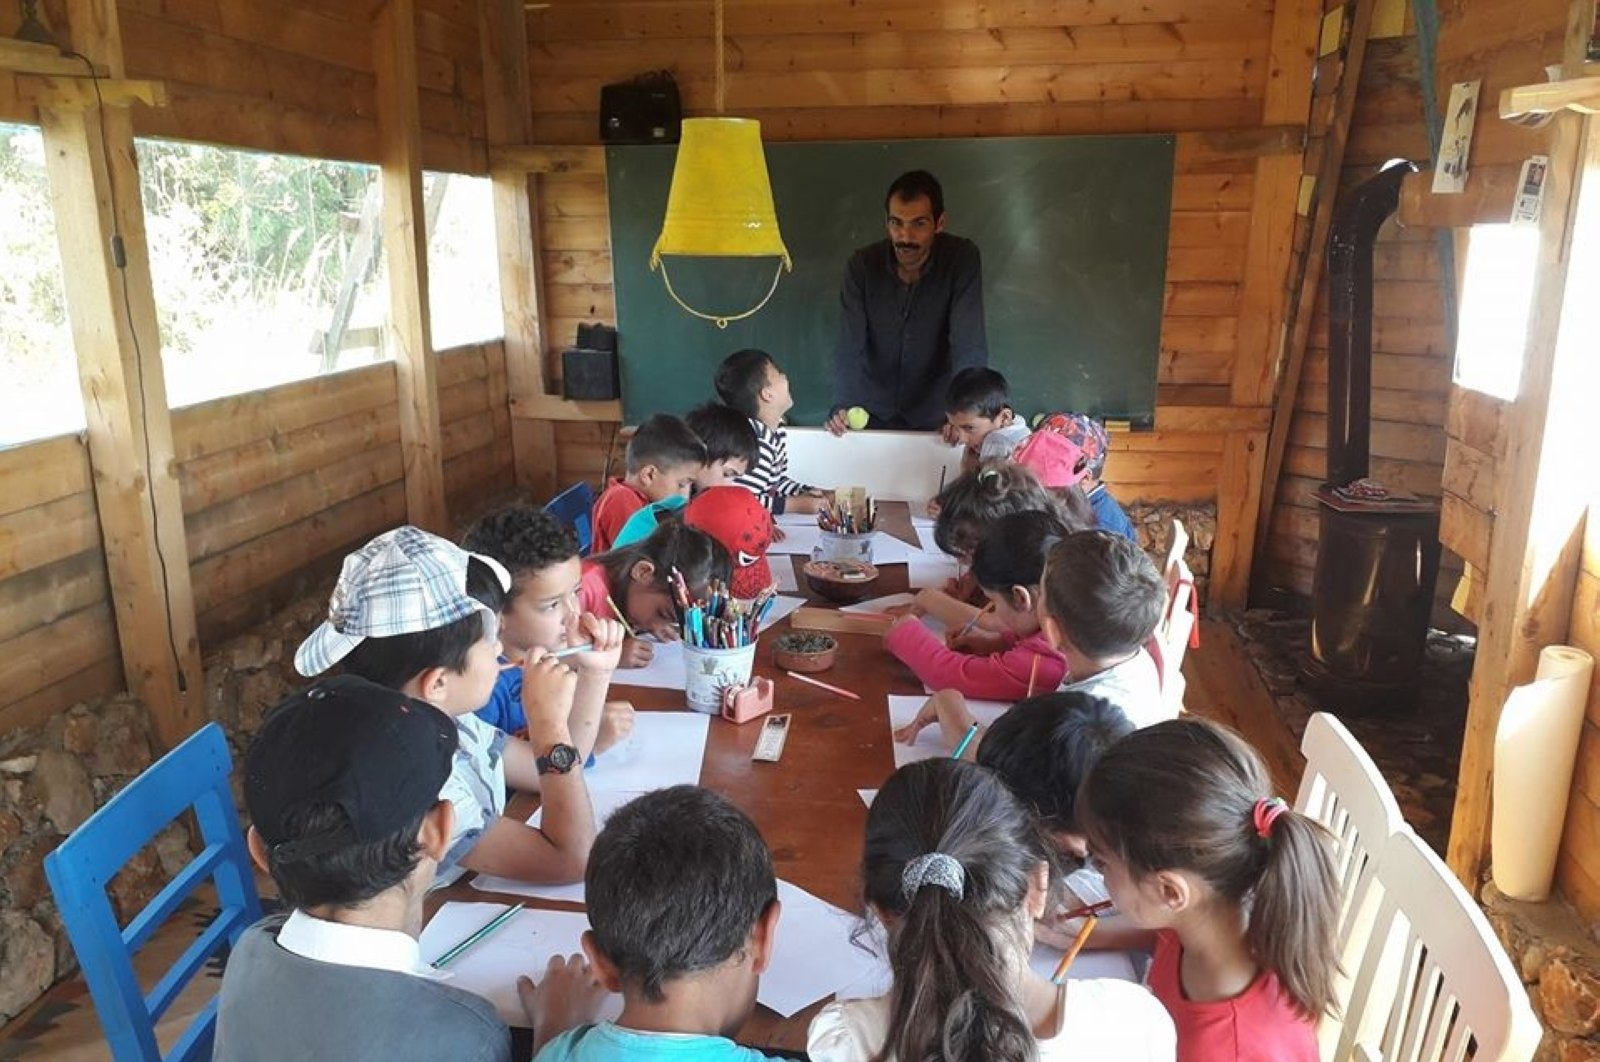 Fatih Küçük in a lesson with children at The Cartoon Mill.